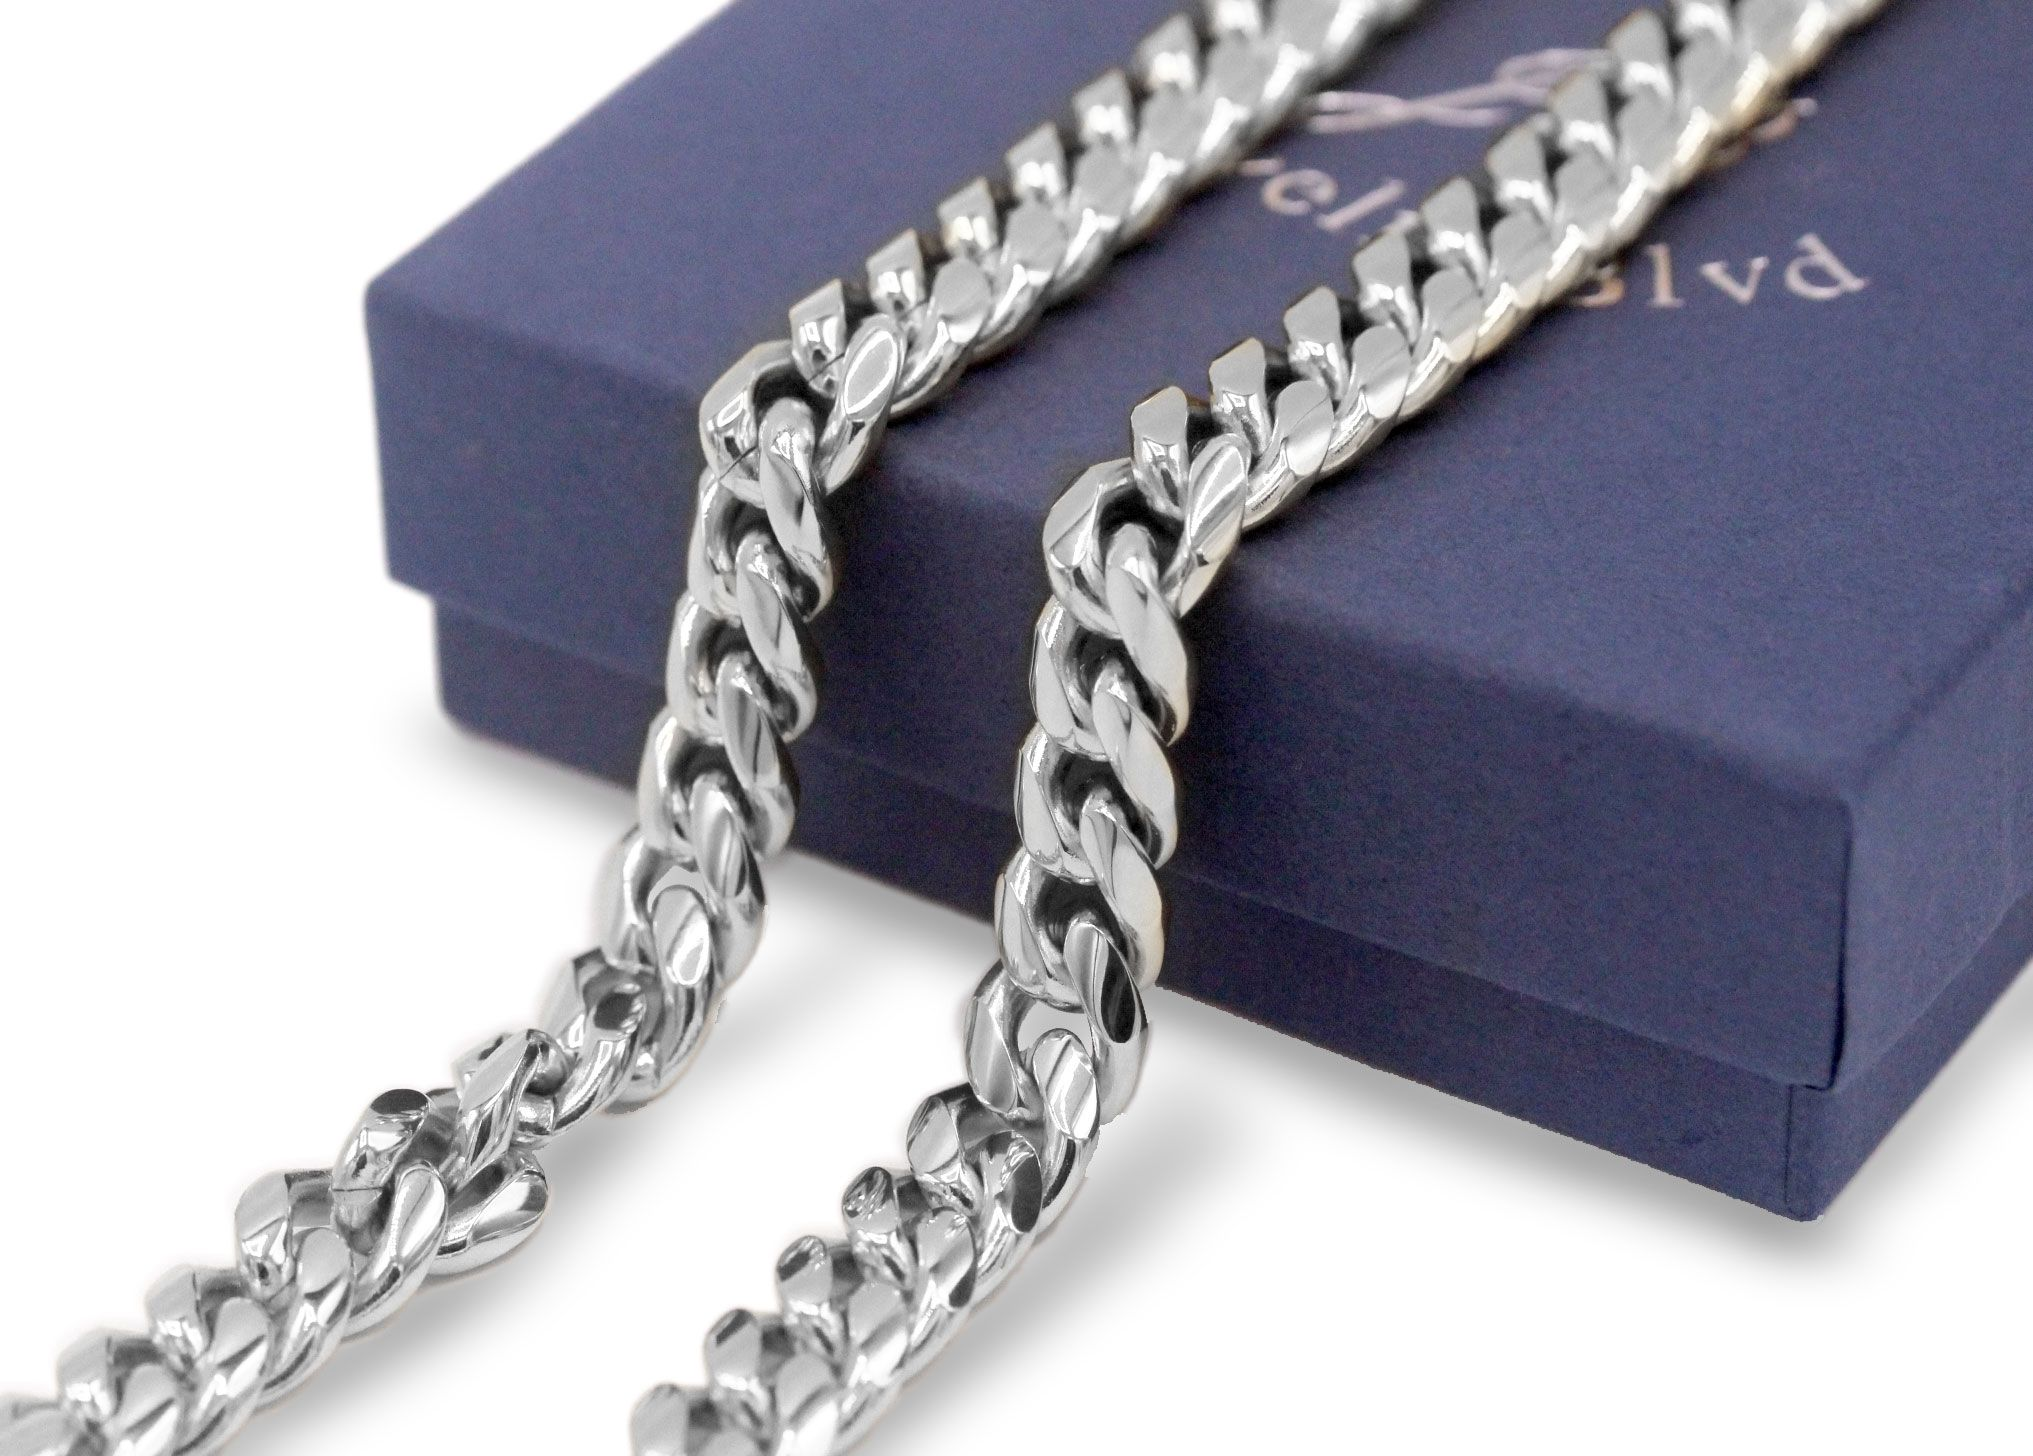 valuable diamond collier chains precious chain stones diamonds stone jewellery bucherer sapphires expensive